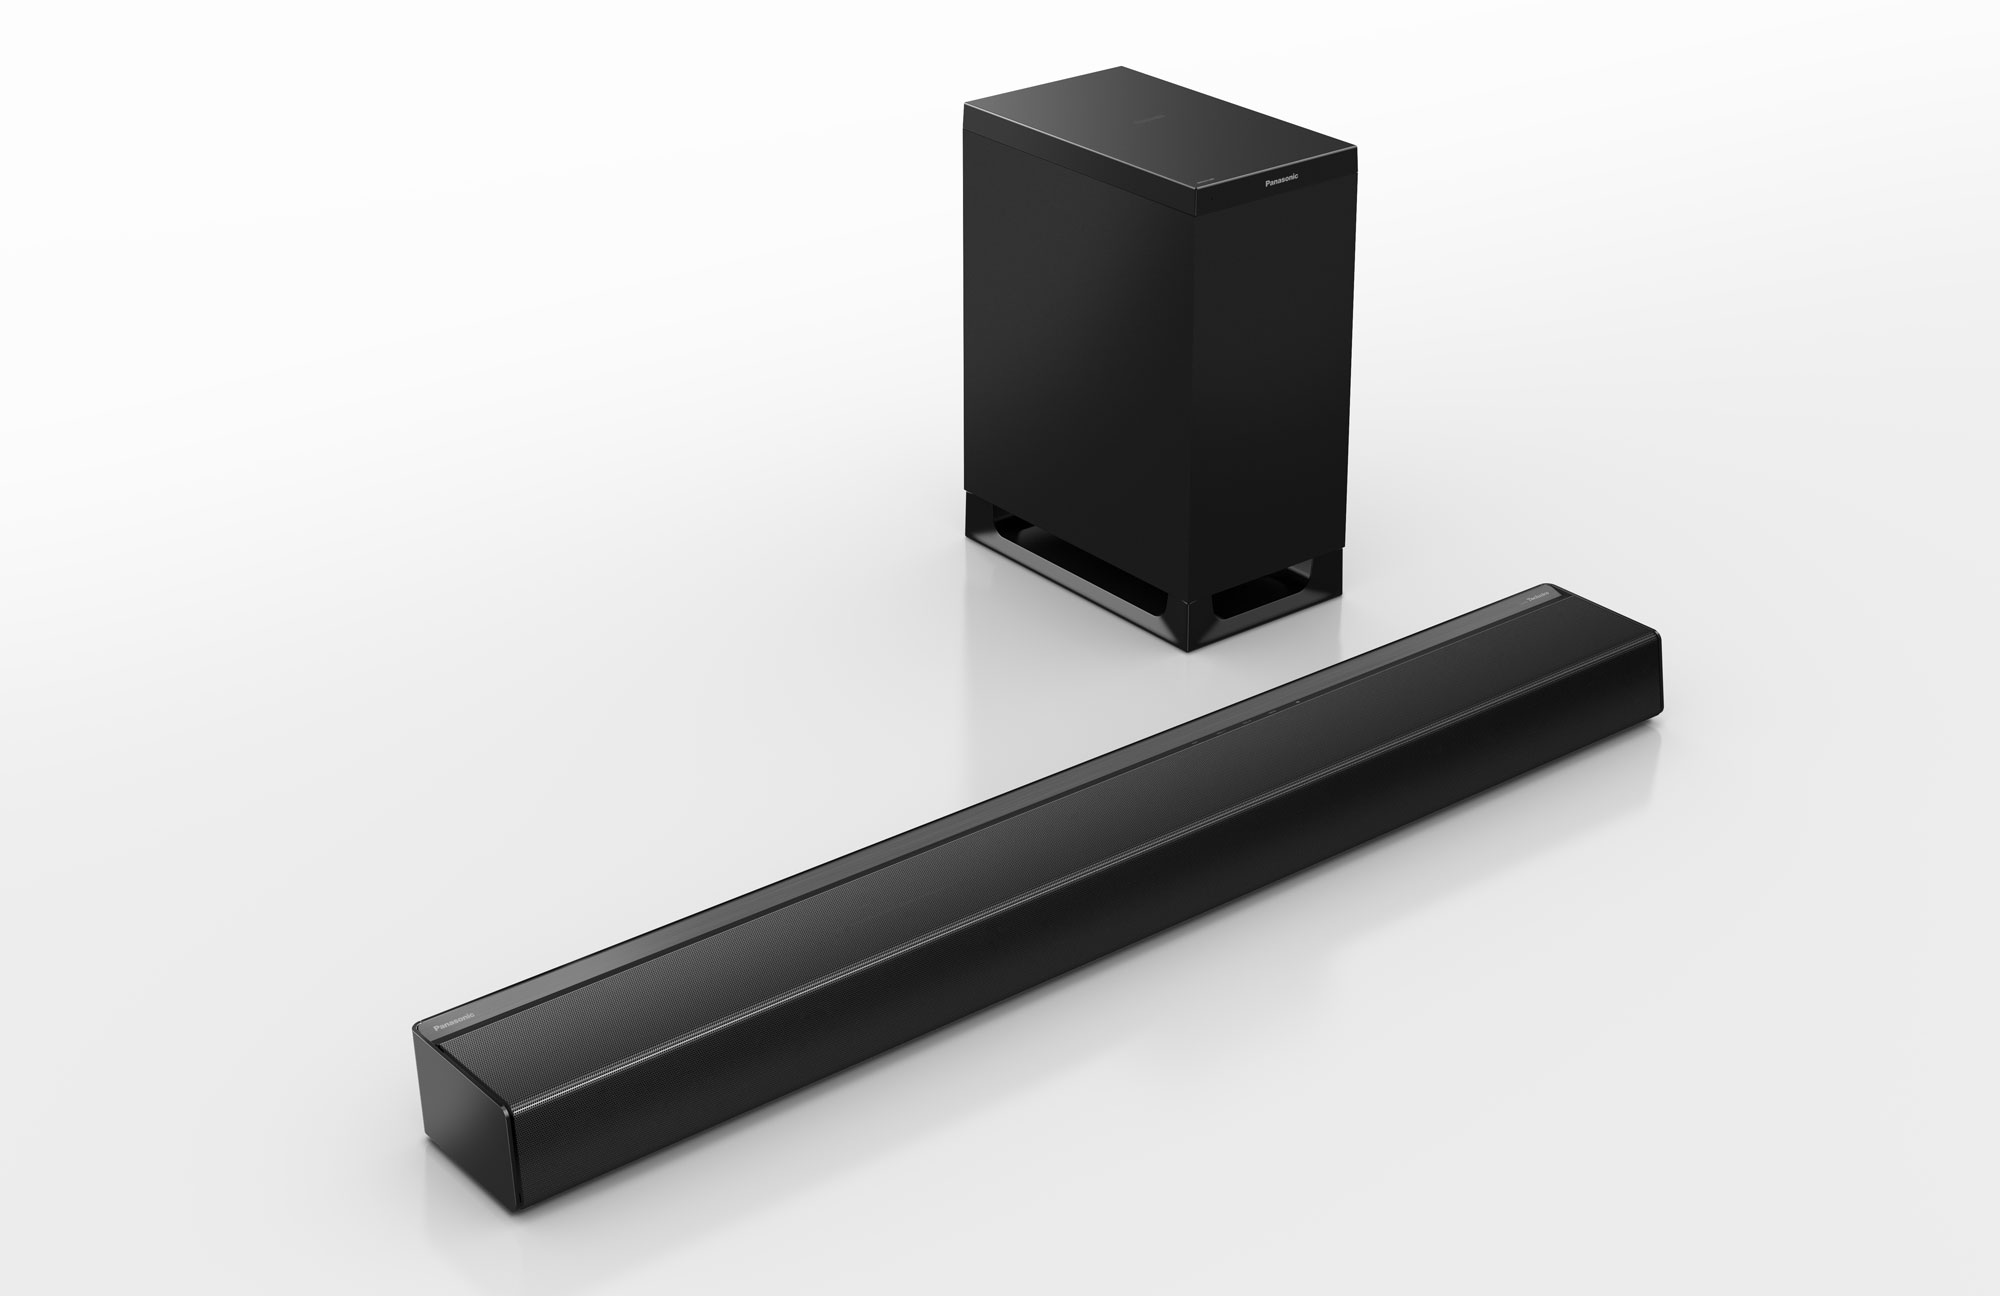 Panasonic reveals new soundbars with Dolby Atmos & DTS:X